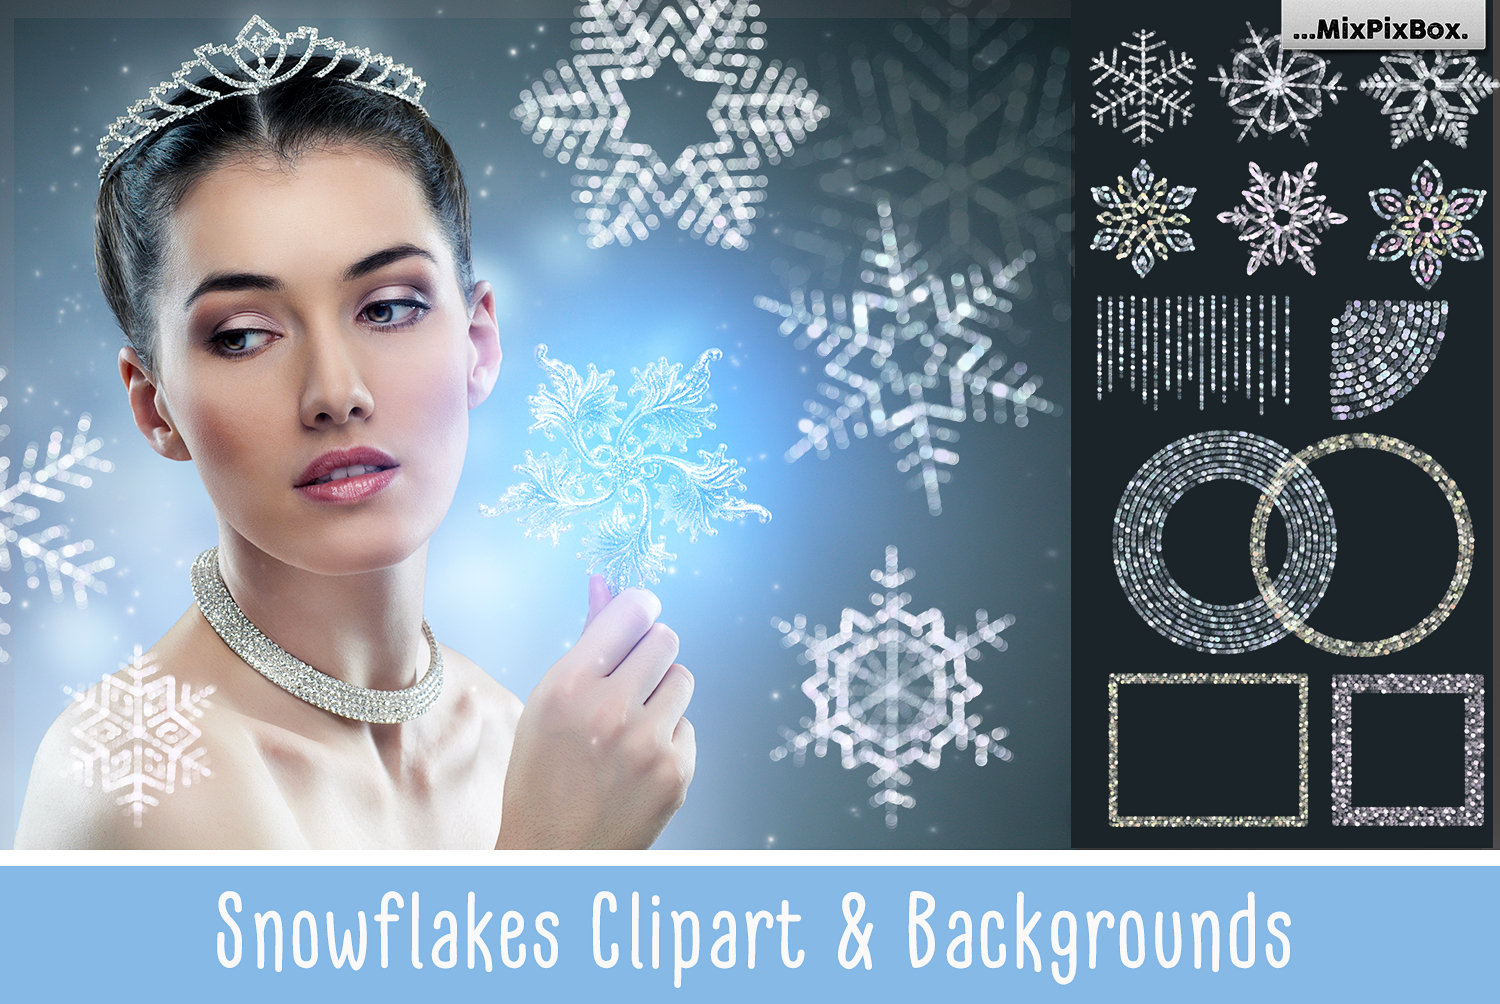 Snowflakes clipart and backgrounds example image 1